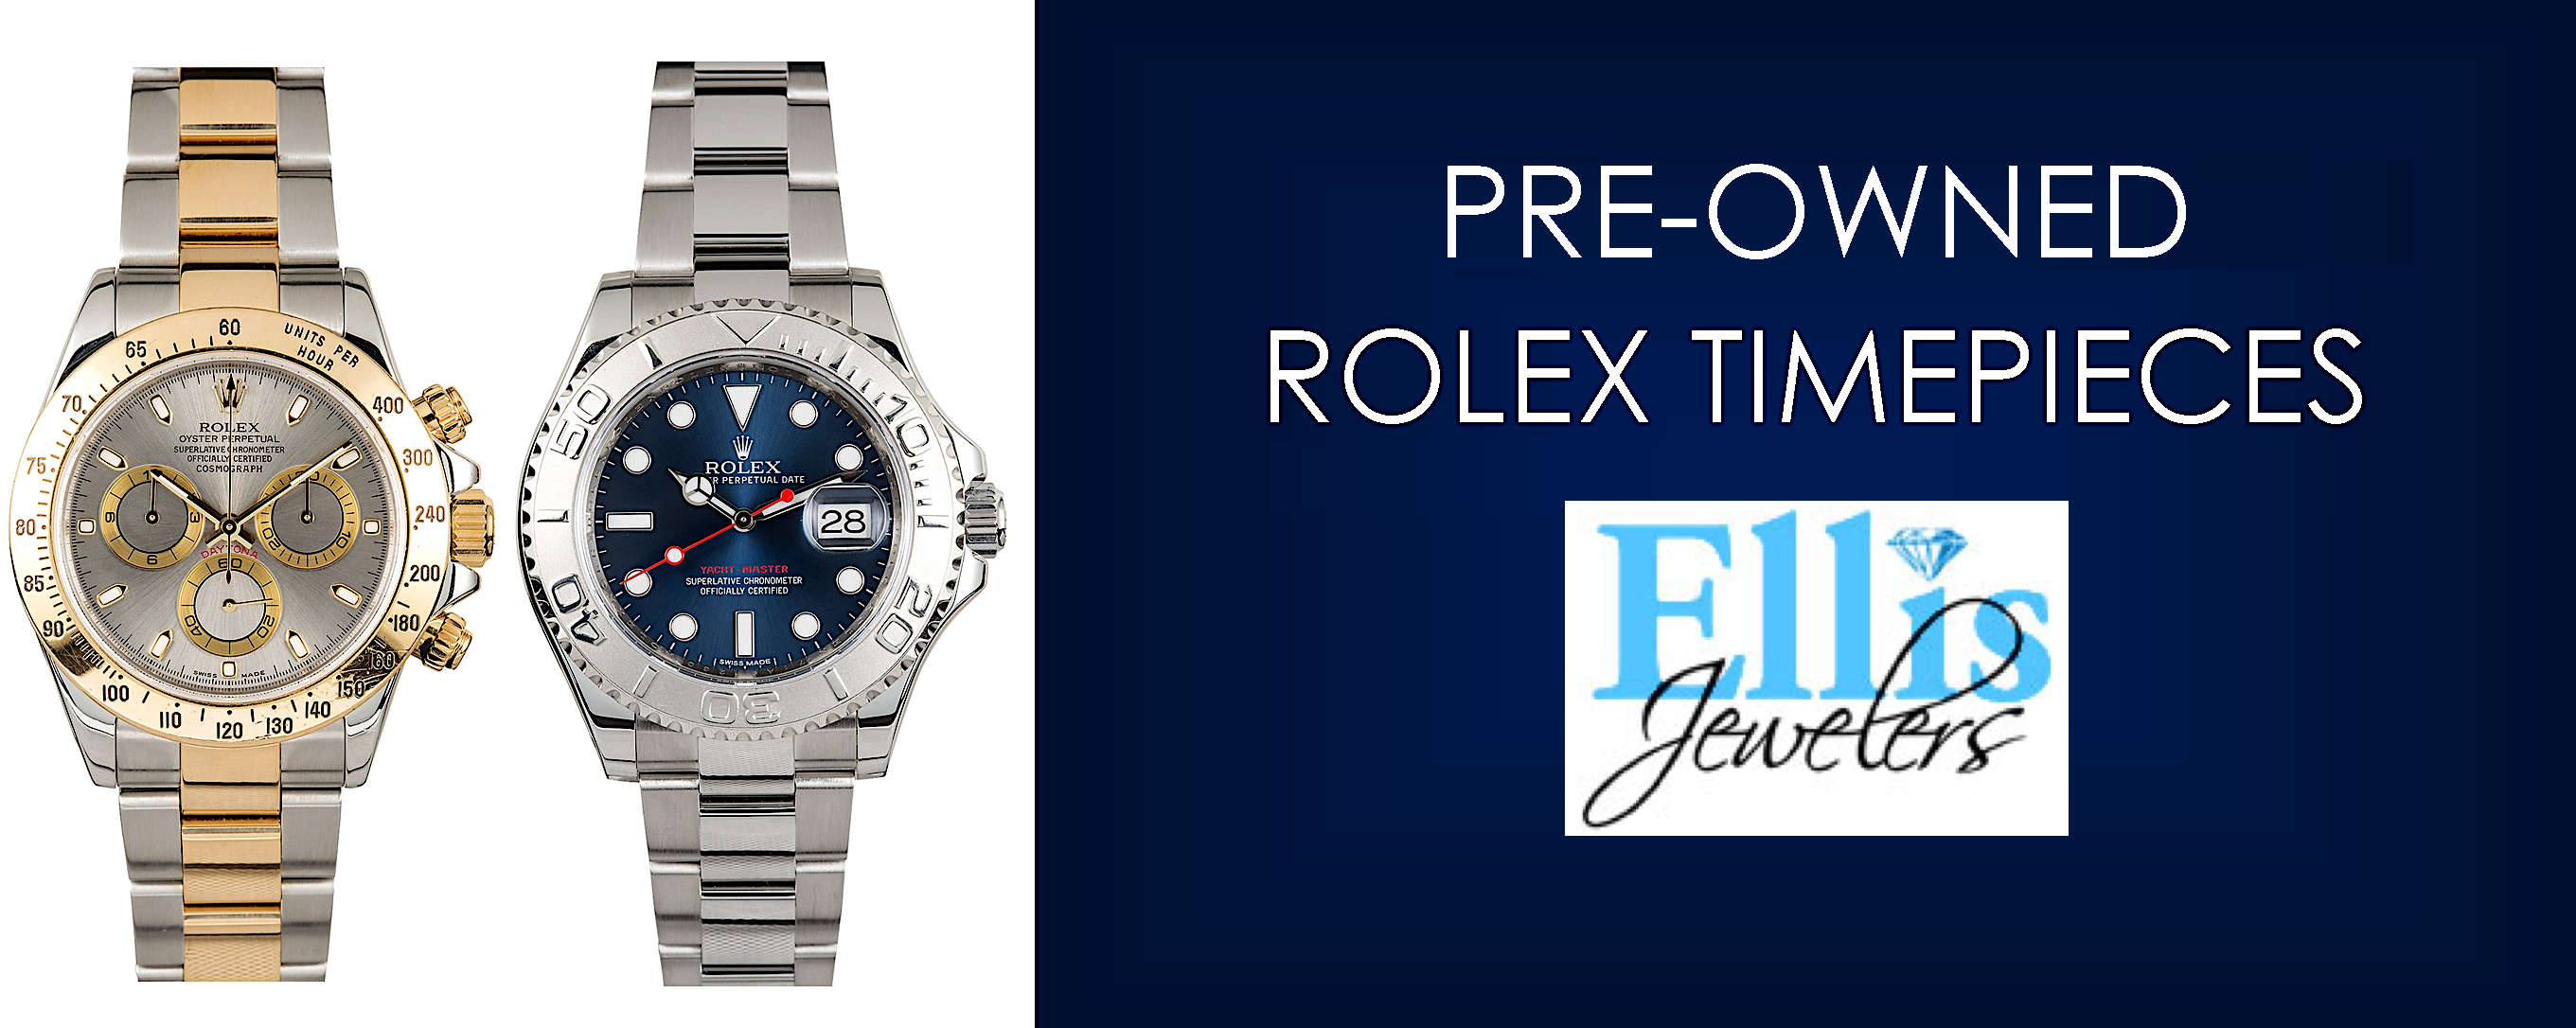 Advantages of Buying Pre-Owned Rolex from Ellis Fine Jewelers